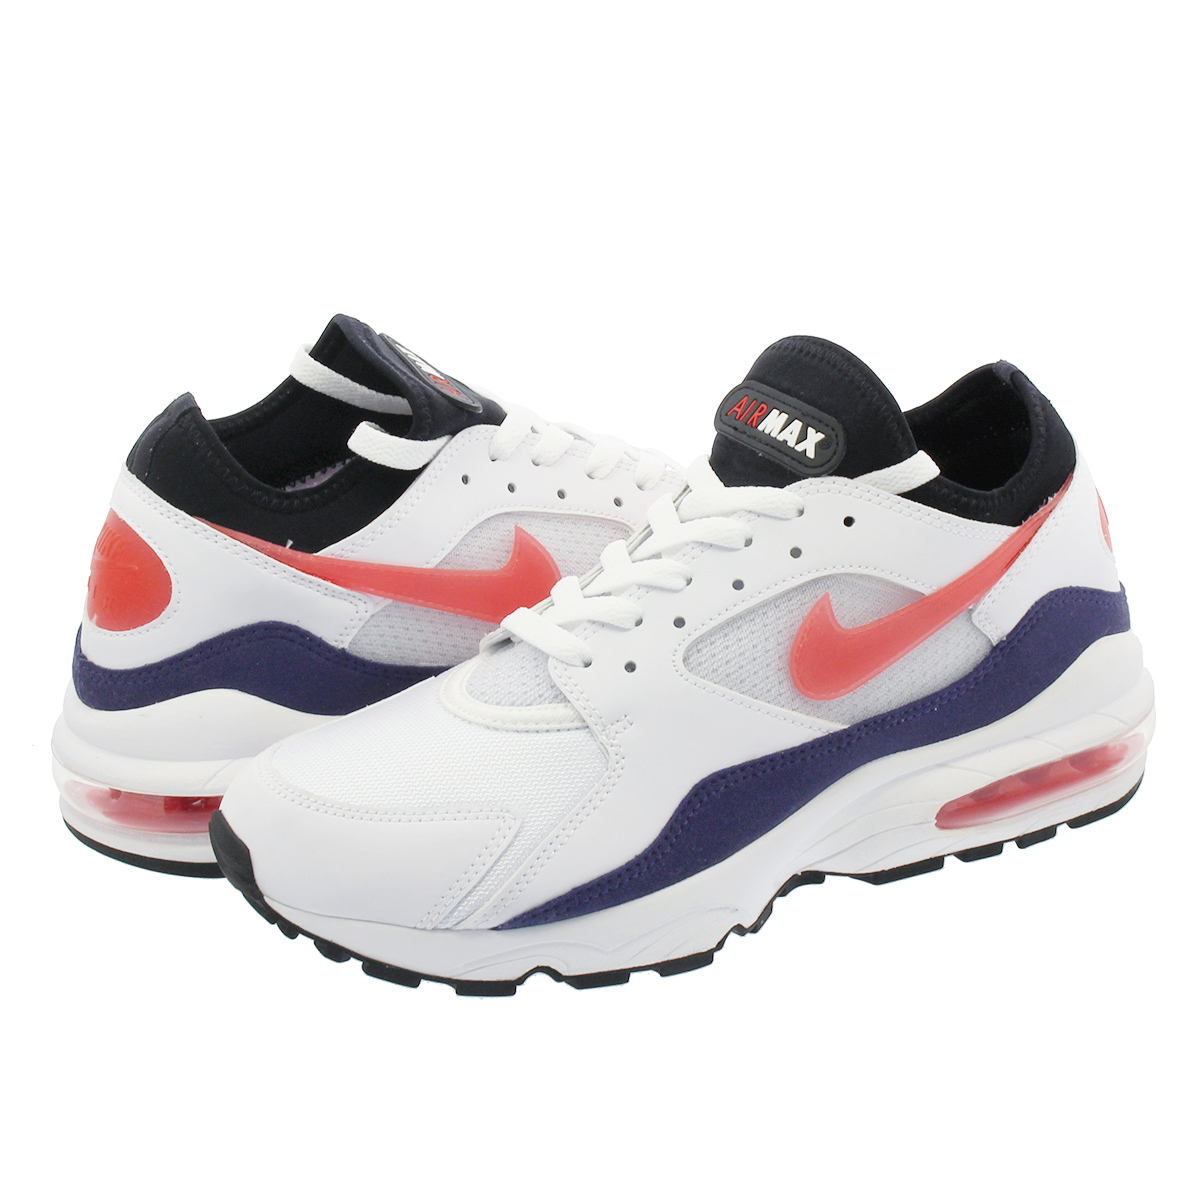 SELECT Global SHOP LOWTEX |  Global SELECT Market: NIKE AIR MAX 93 Kie Ney AMAX 93 WHITE/HABANERO RED 306,551-102 5a8de4